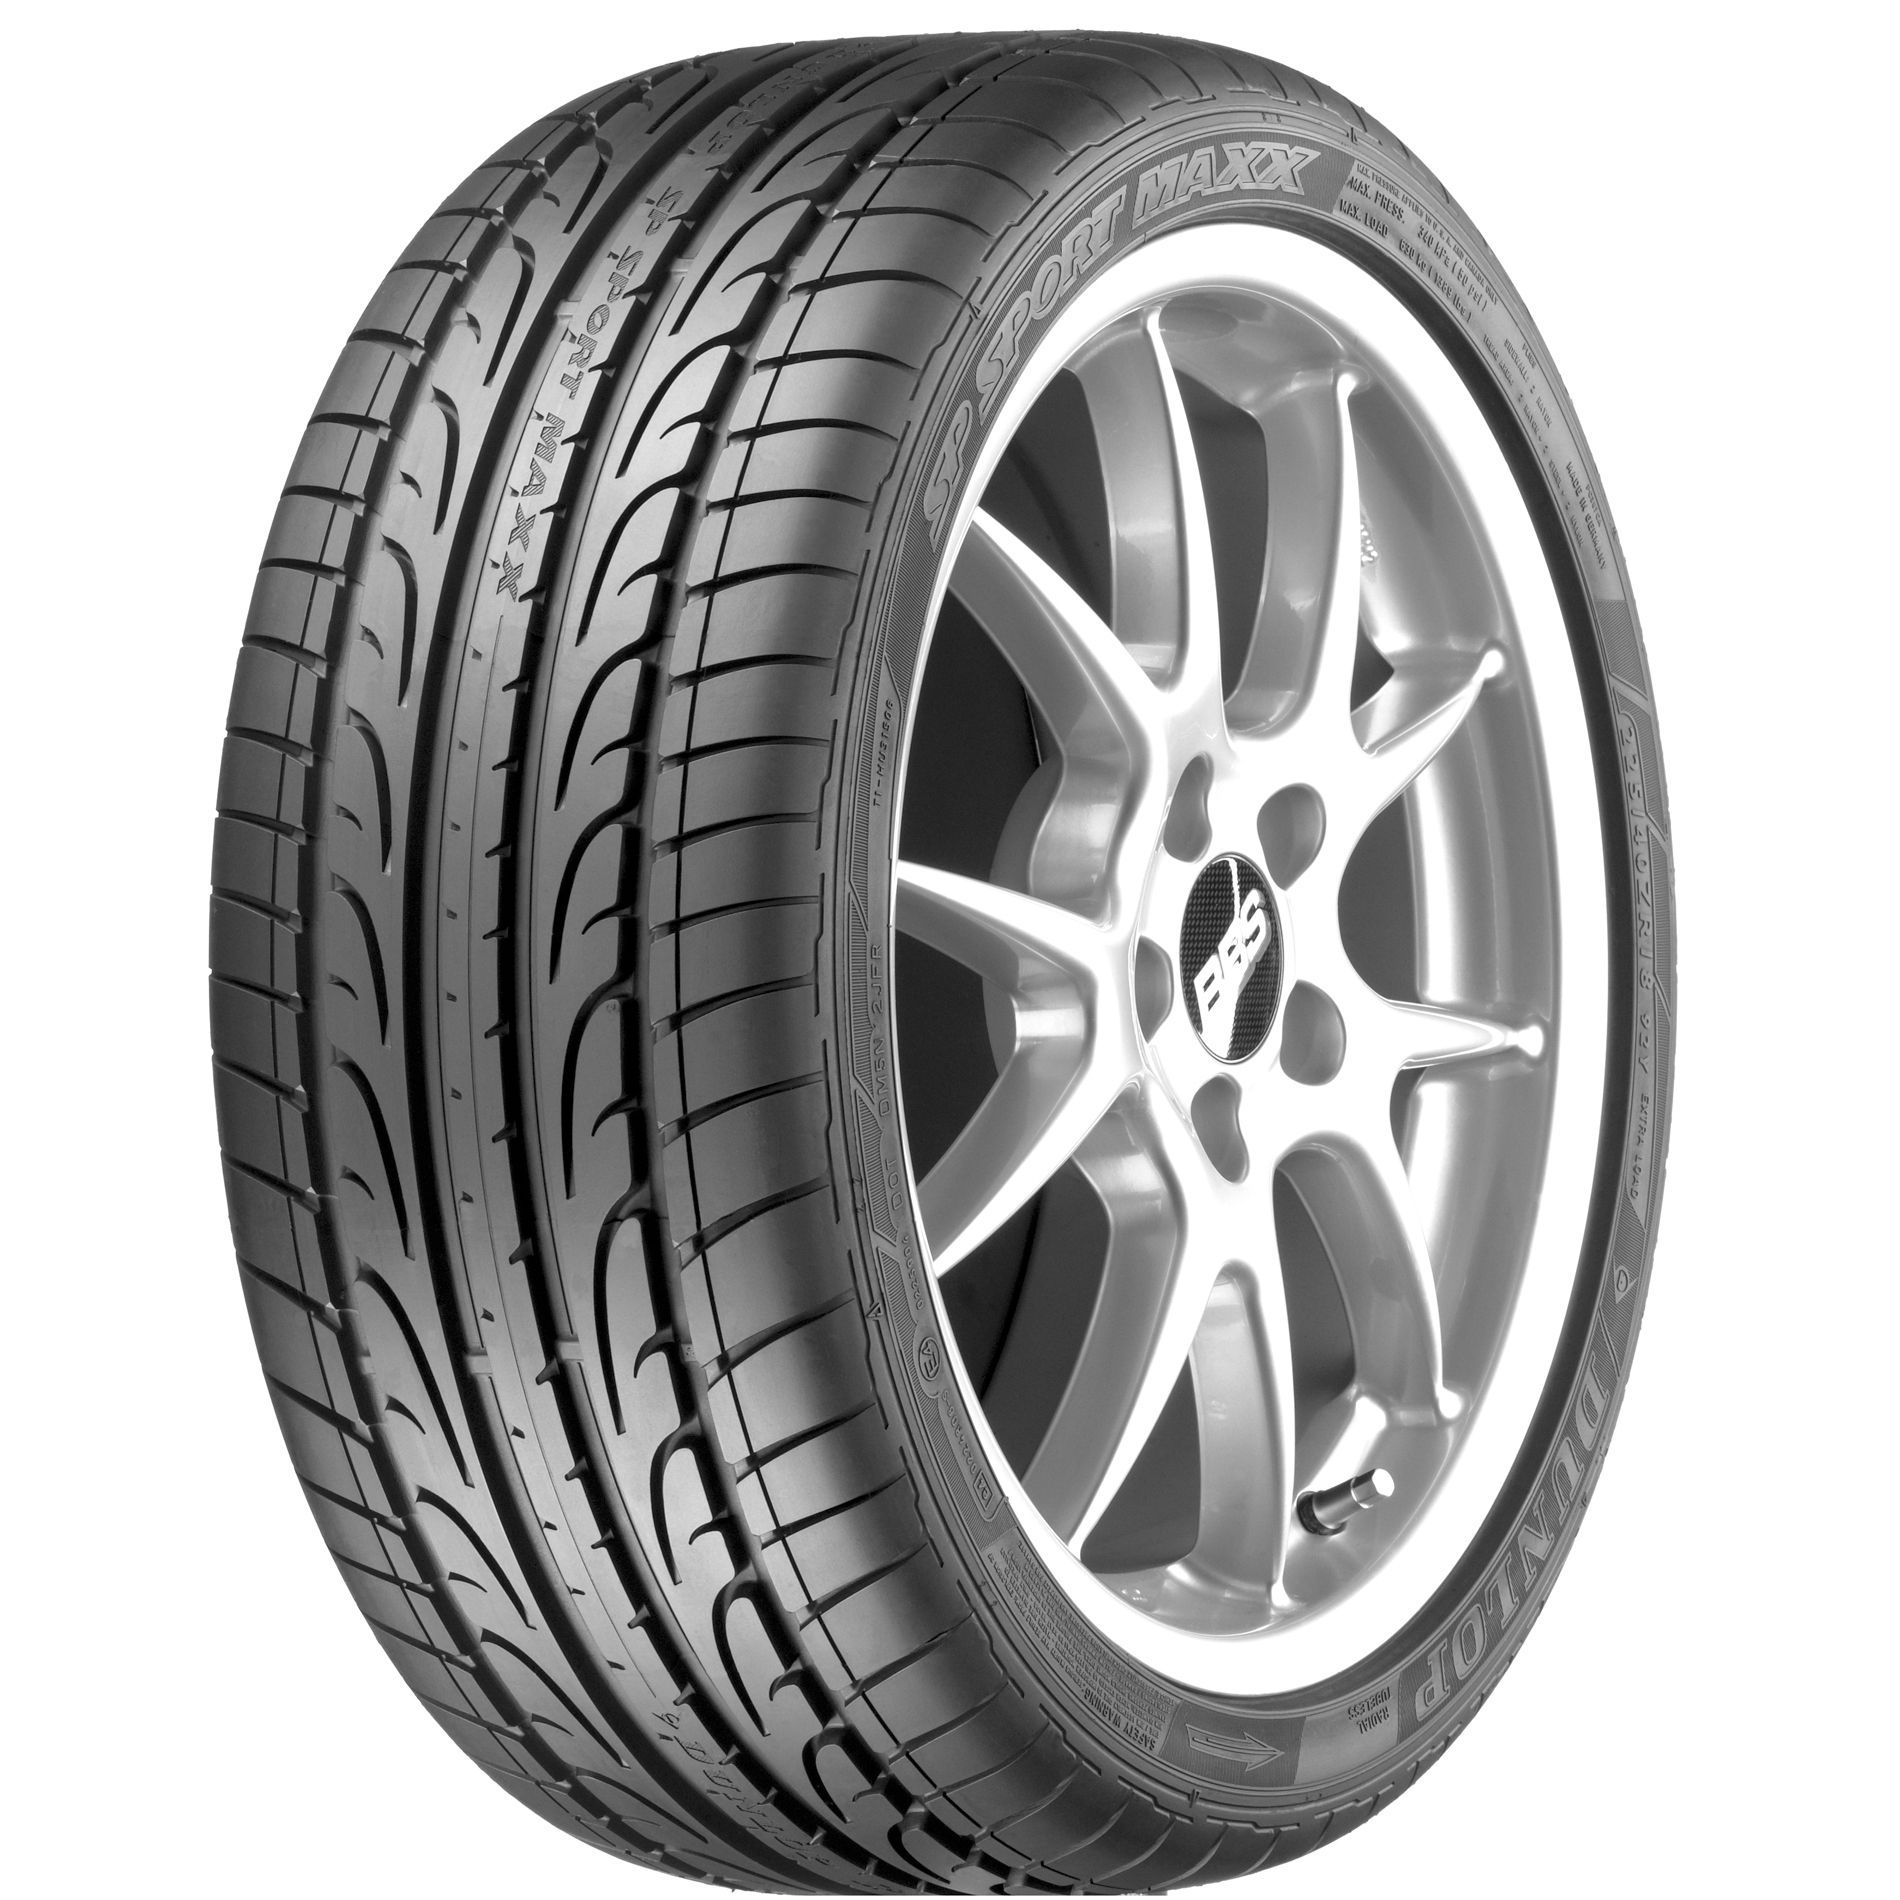 Dunlop SP Sport Maxx GT Tire 265 40R21XL STDNON RATED BW 265 40 21